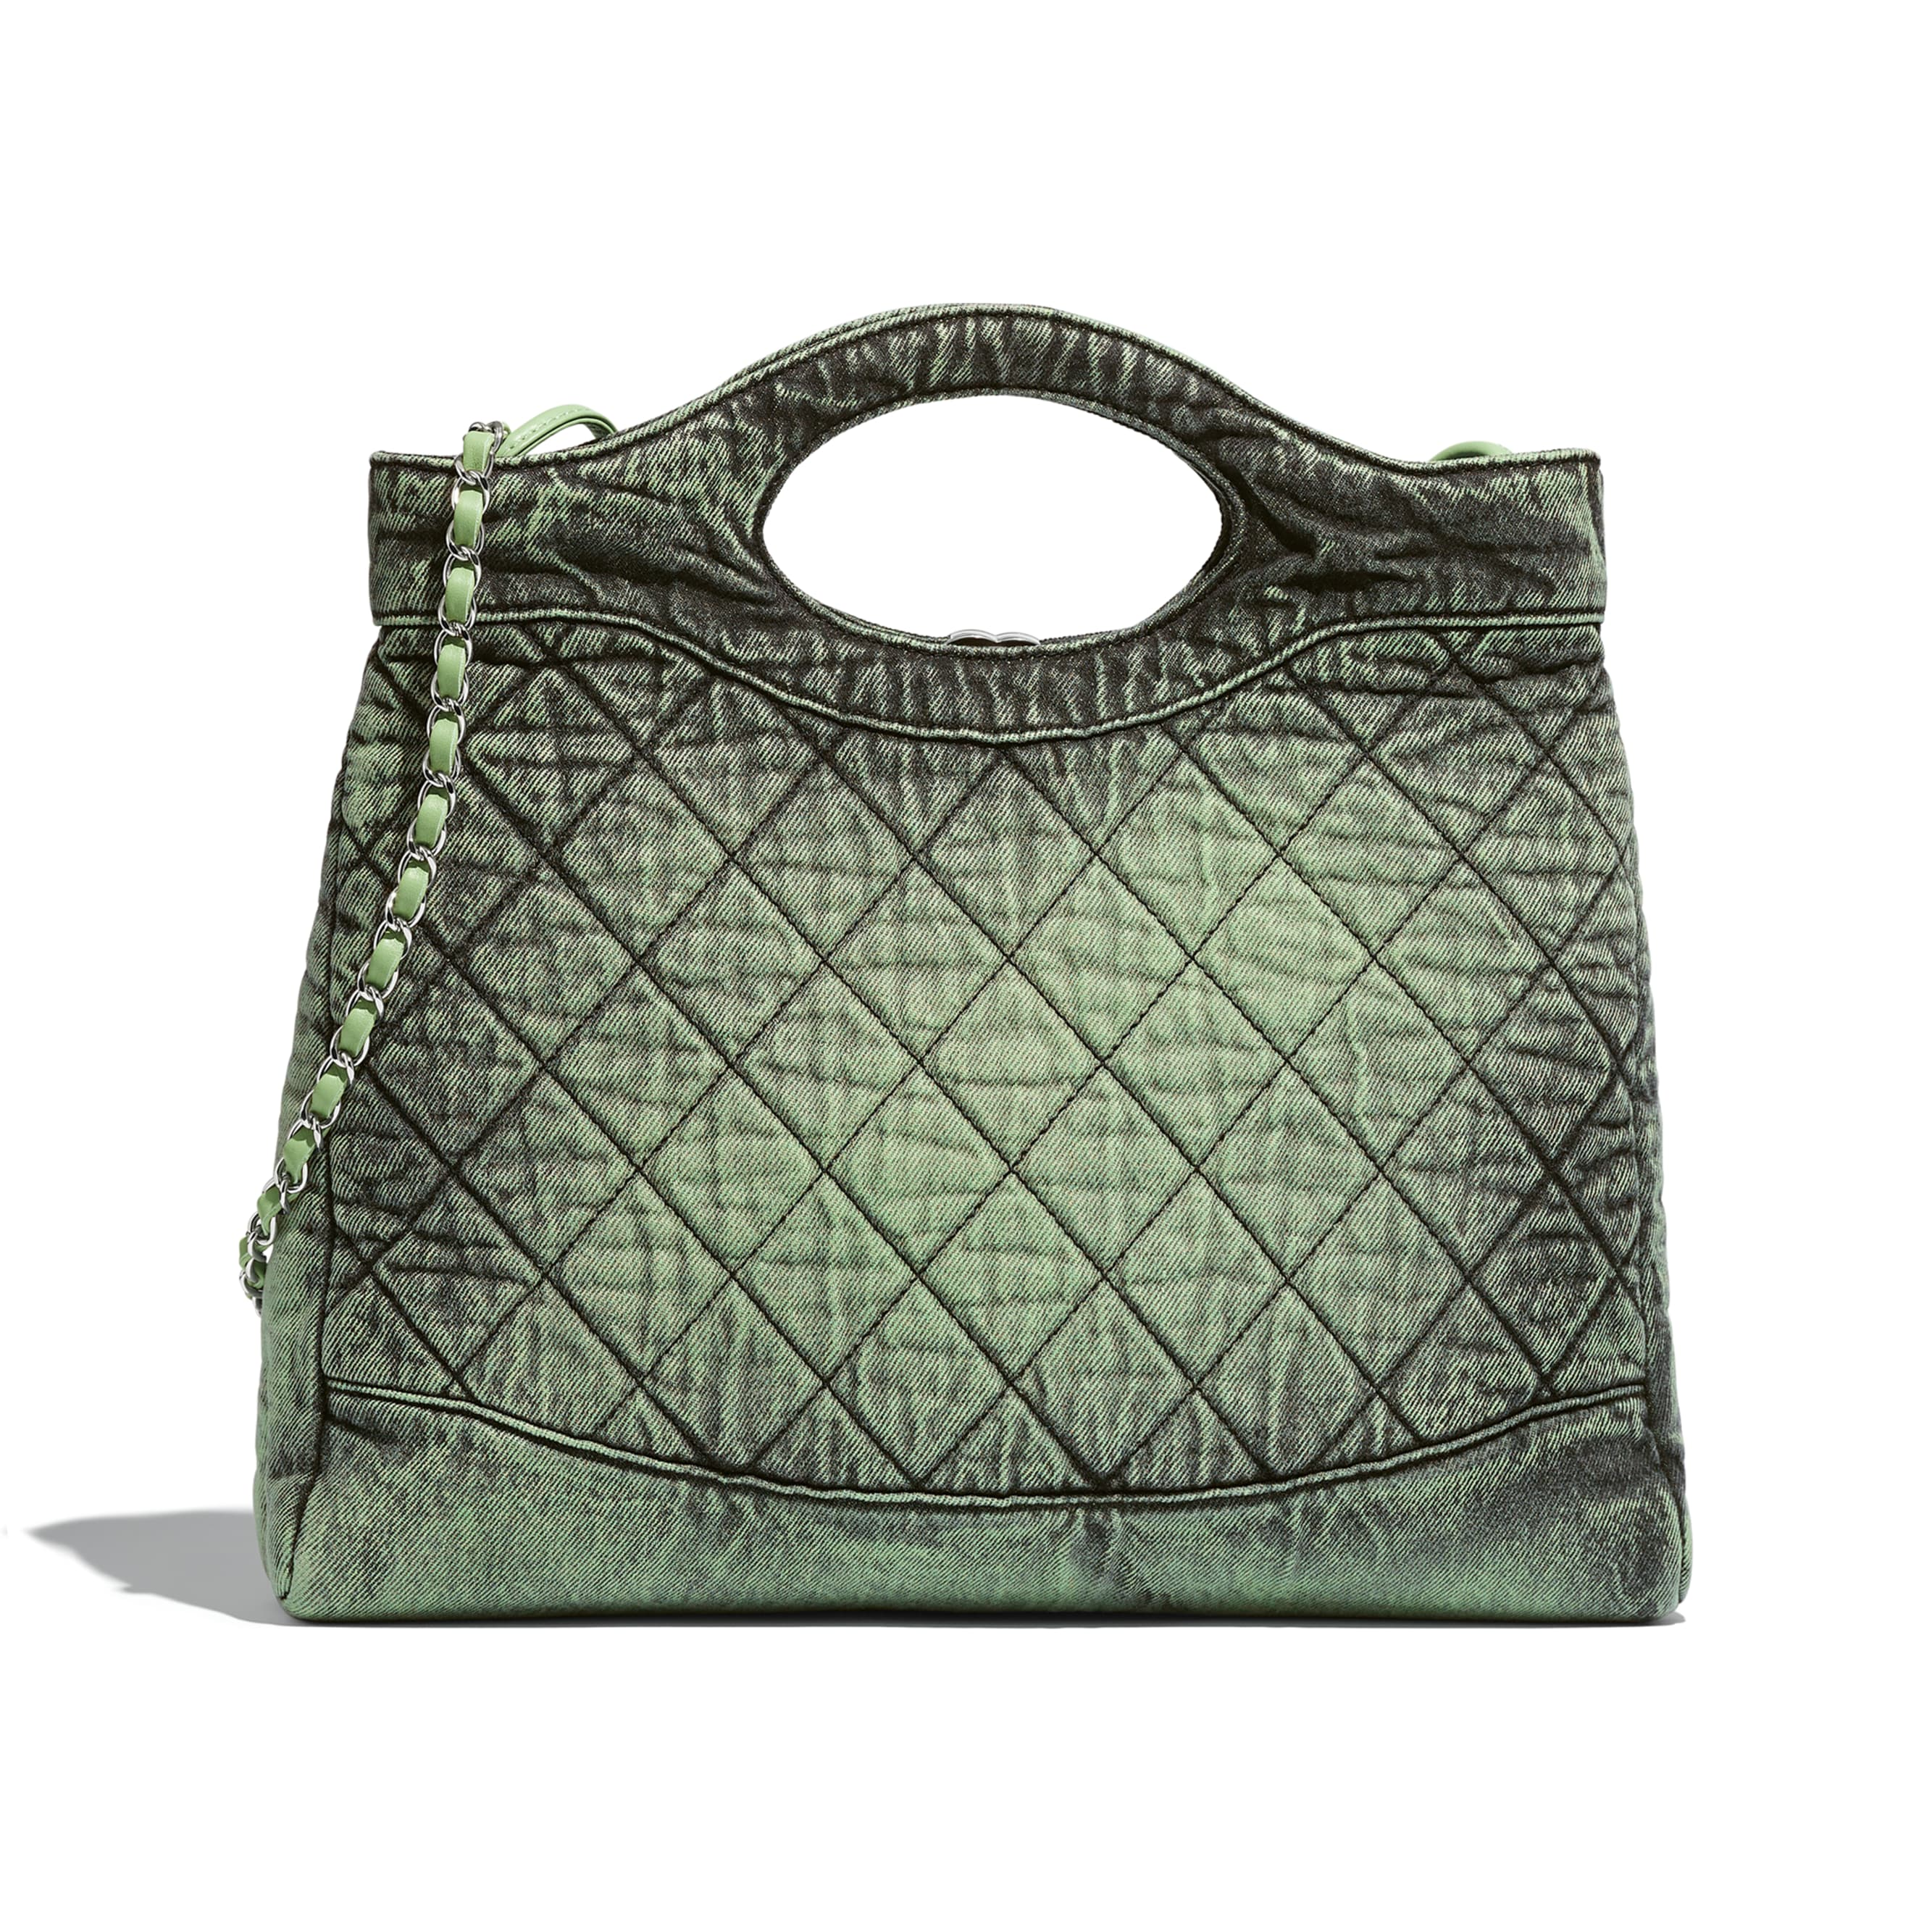 CHANEL 31 Shopping Bag - Green & Black - Denim & Silver-Tone Metal - Alternative view - see standard sized version